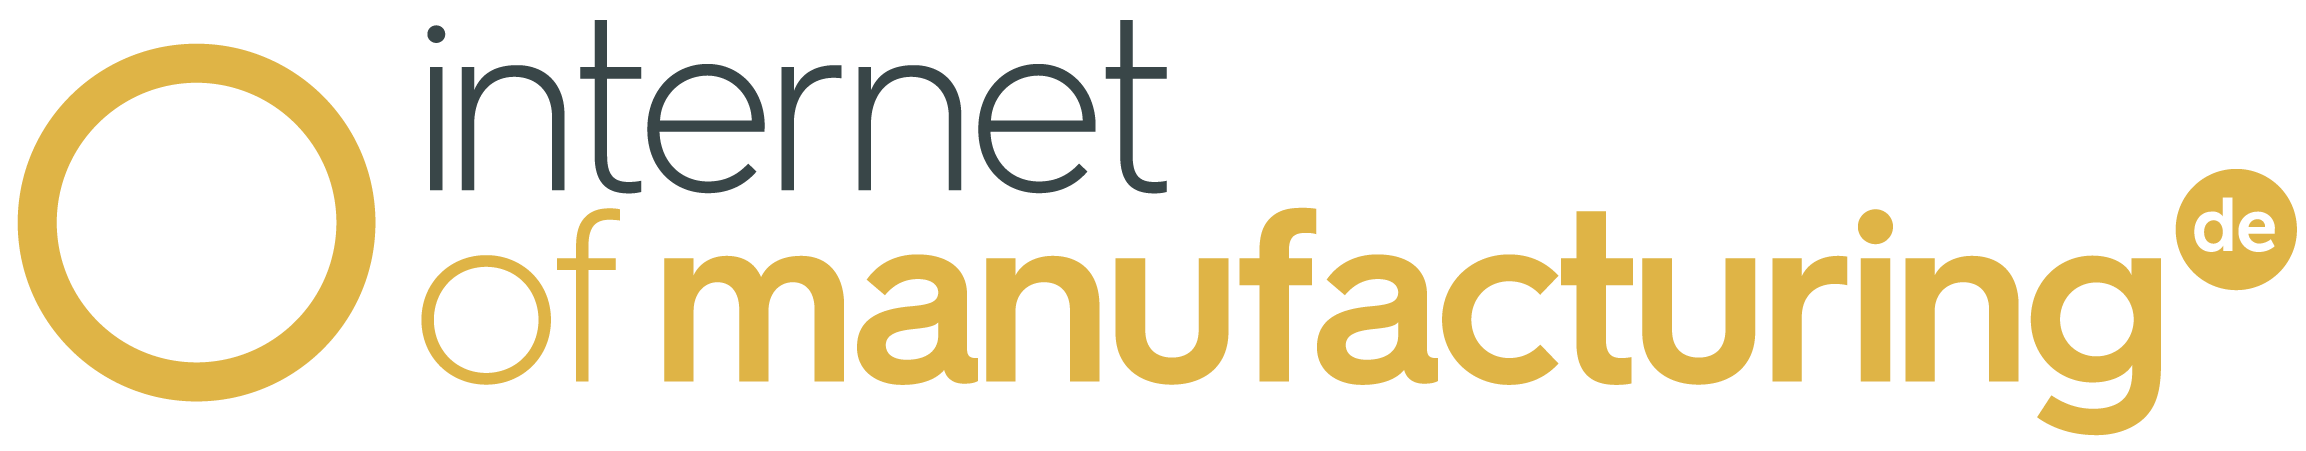 The Internet of Manufacturing conference logo